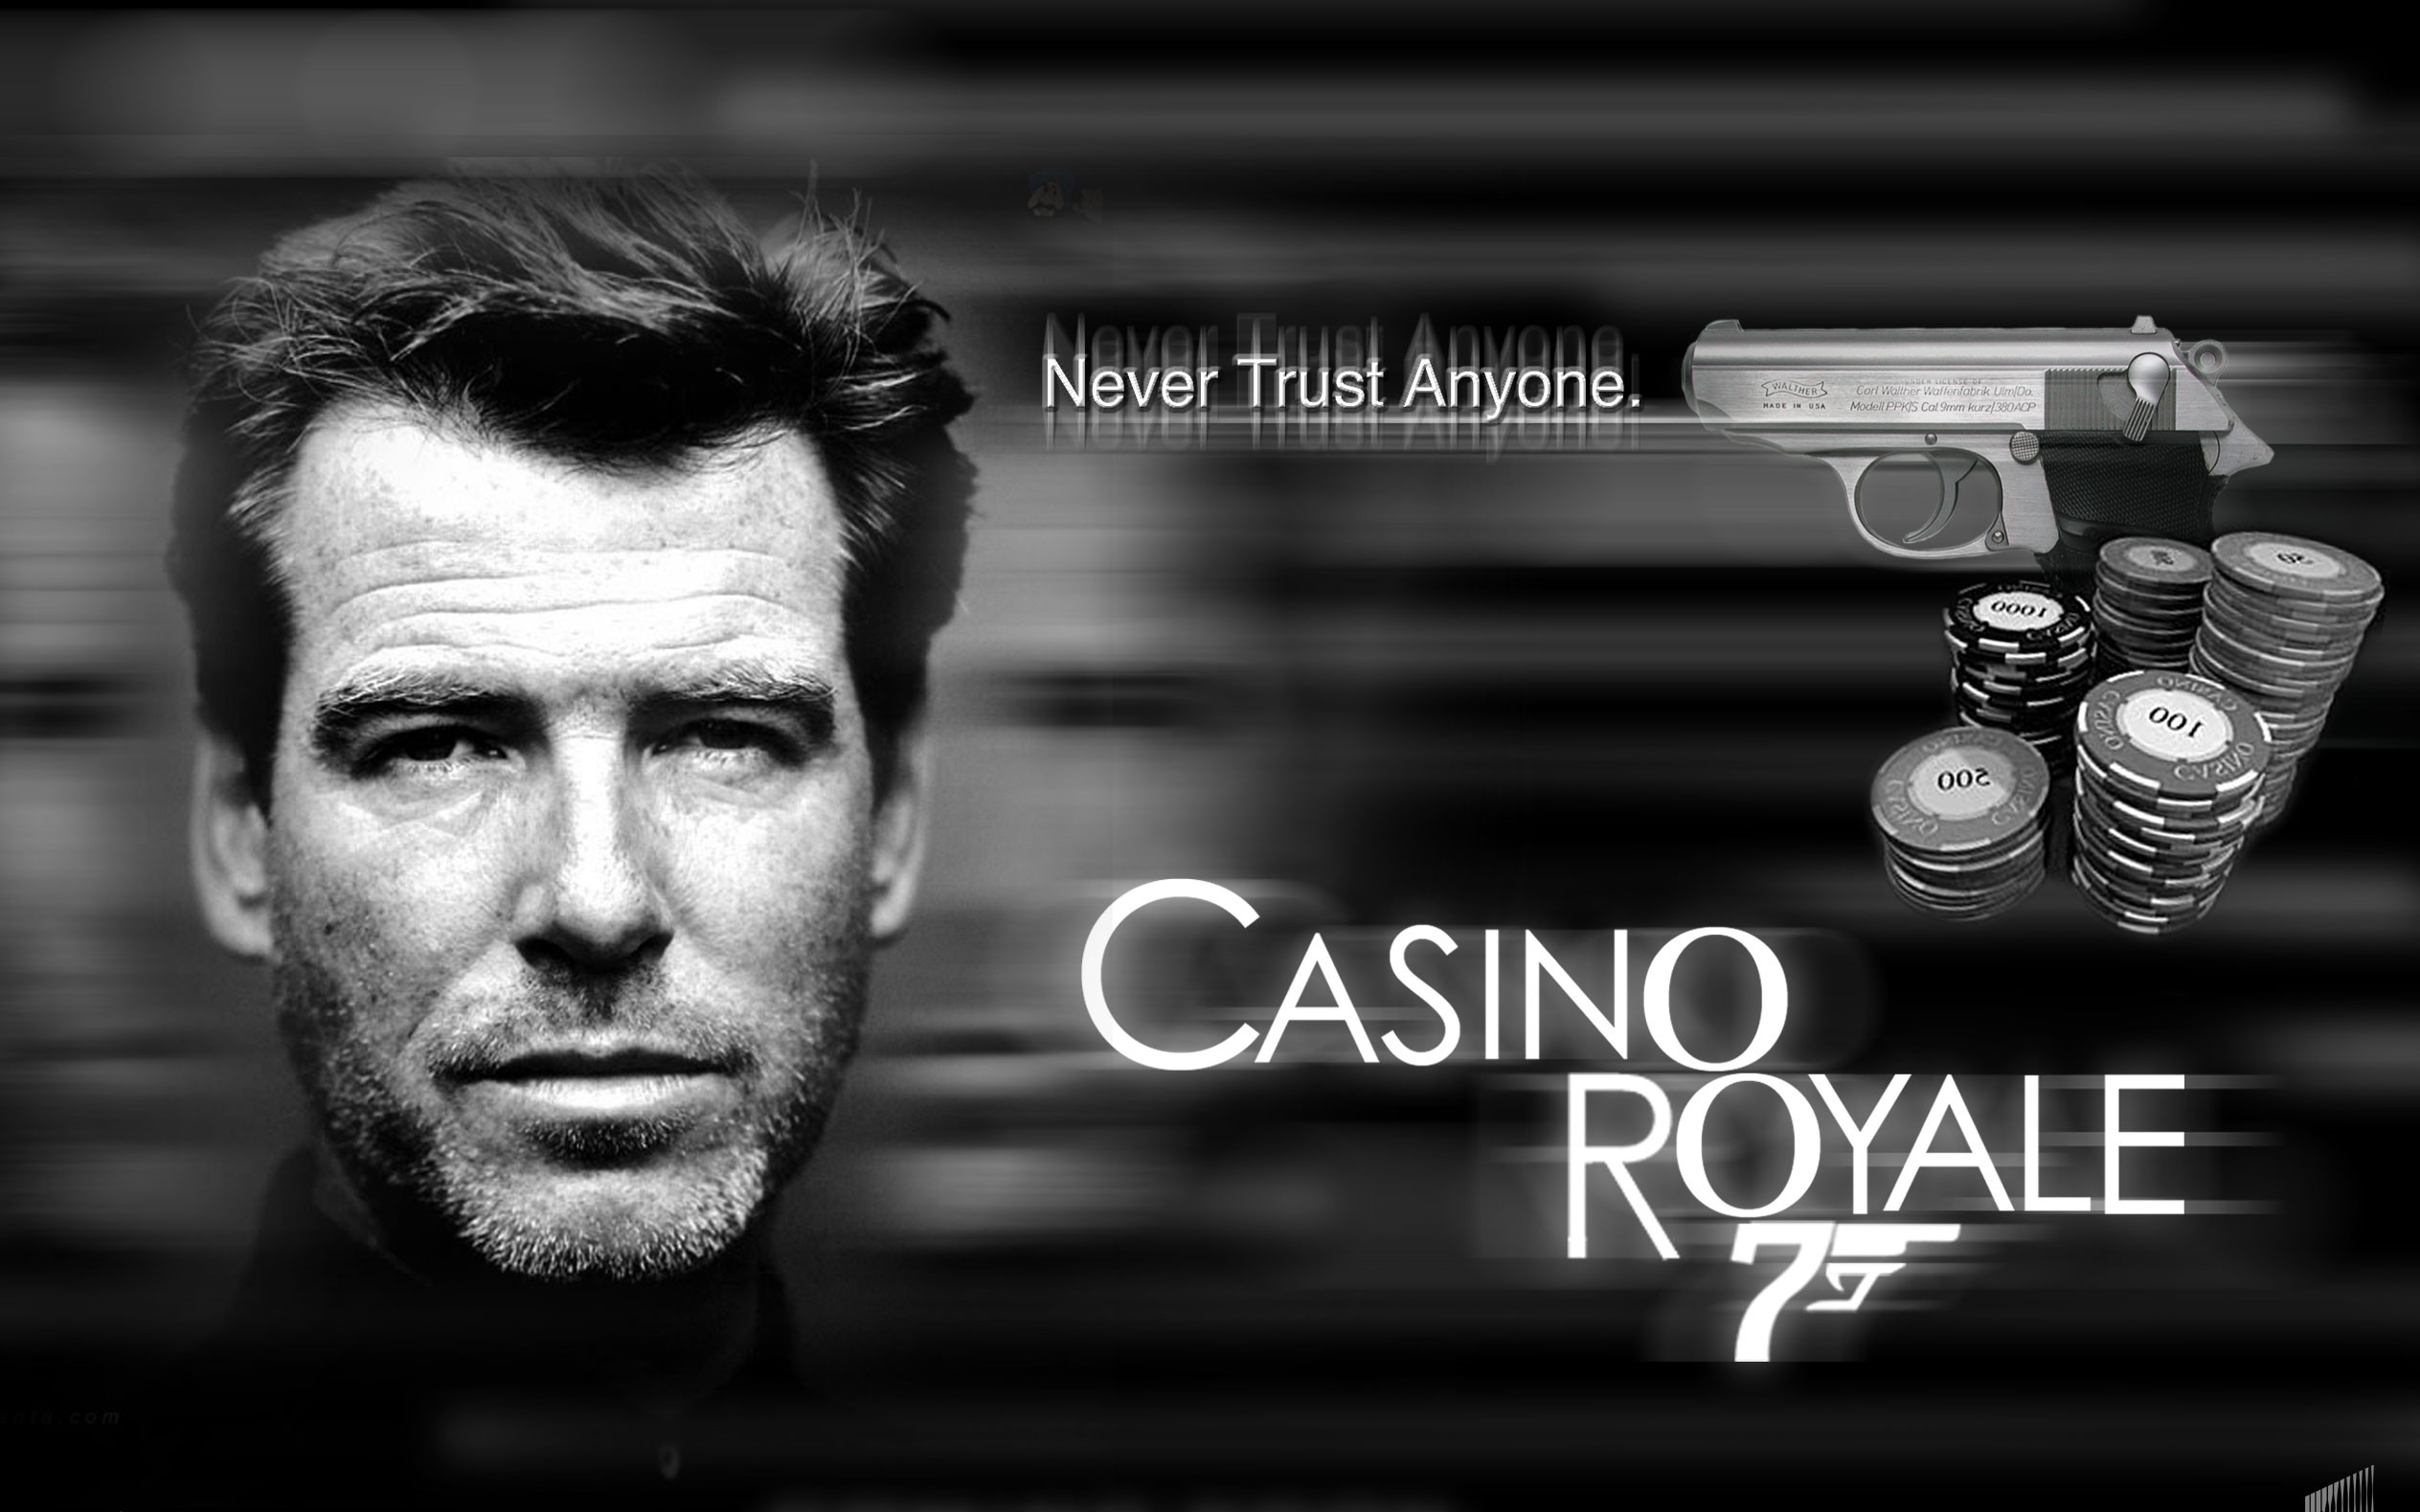 2527x1579 Casino Royale HD Wallpaper | Hintergrund |  | ID:626309 - Wallpaper  Abyss